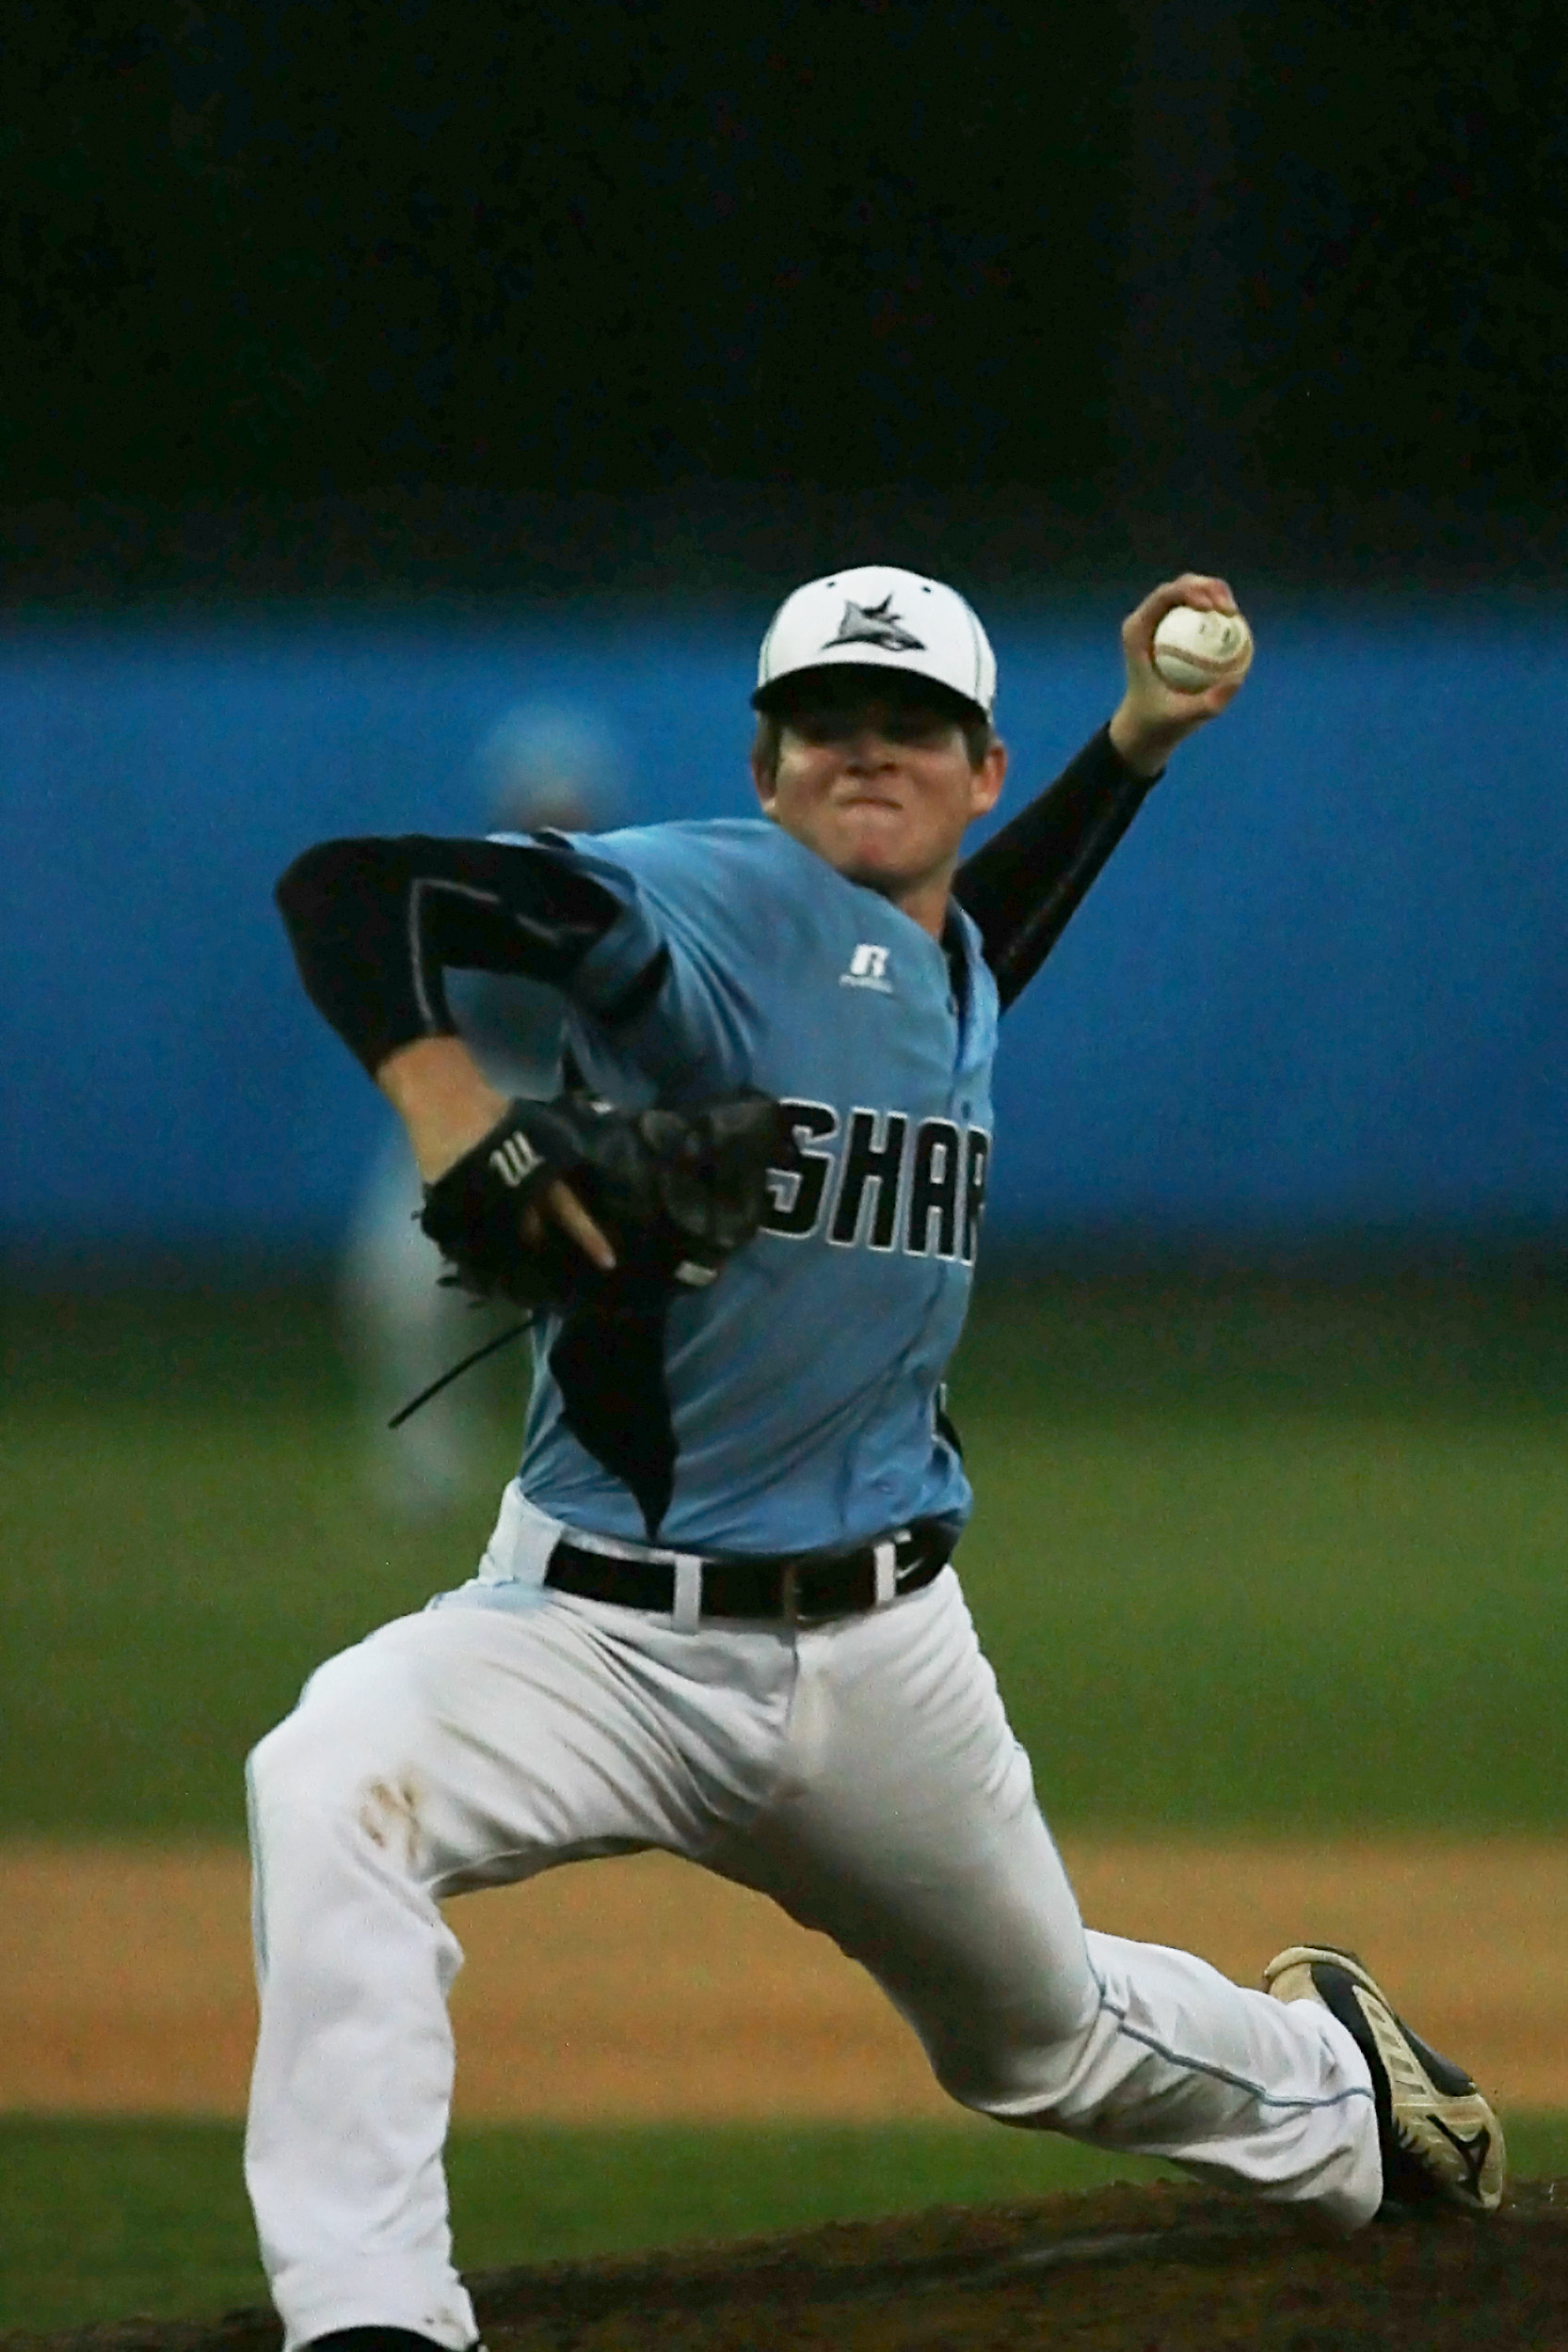 Kevin Faulkner delivers a pitch against Paxon.